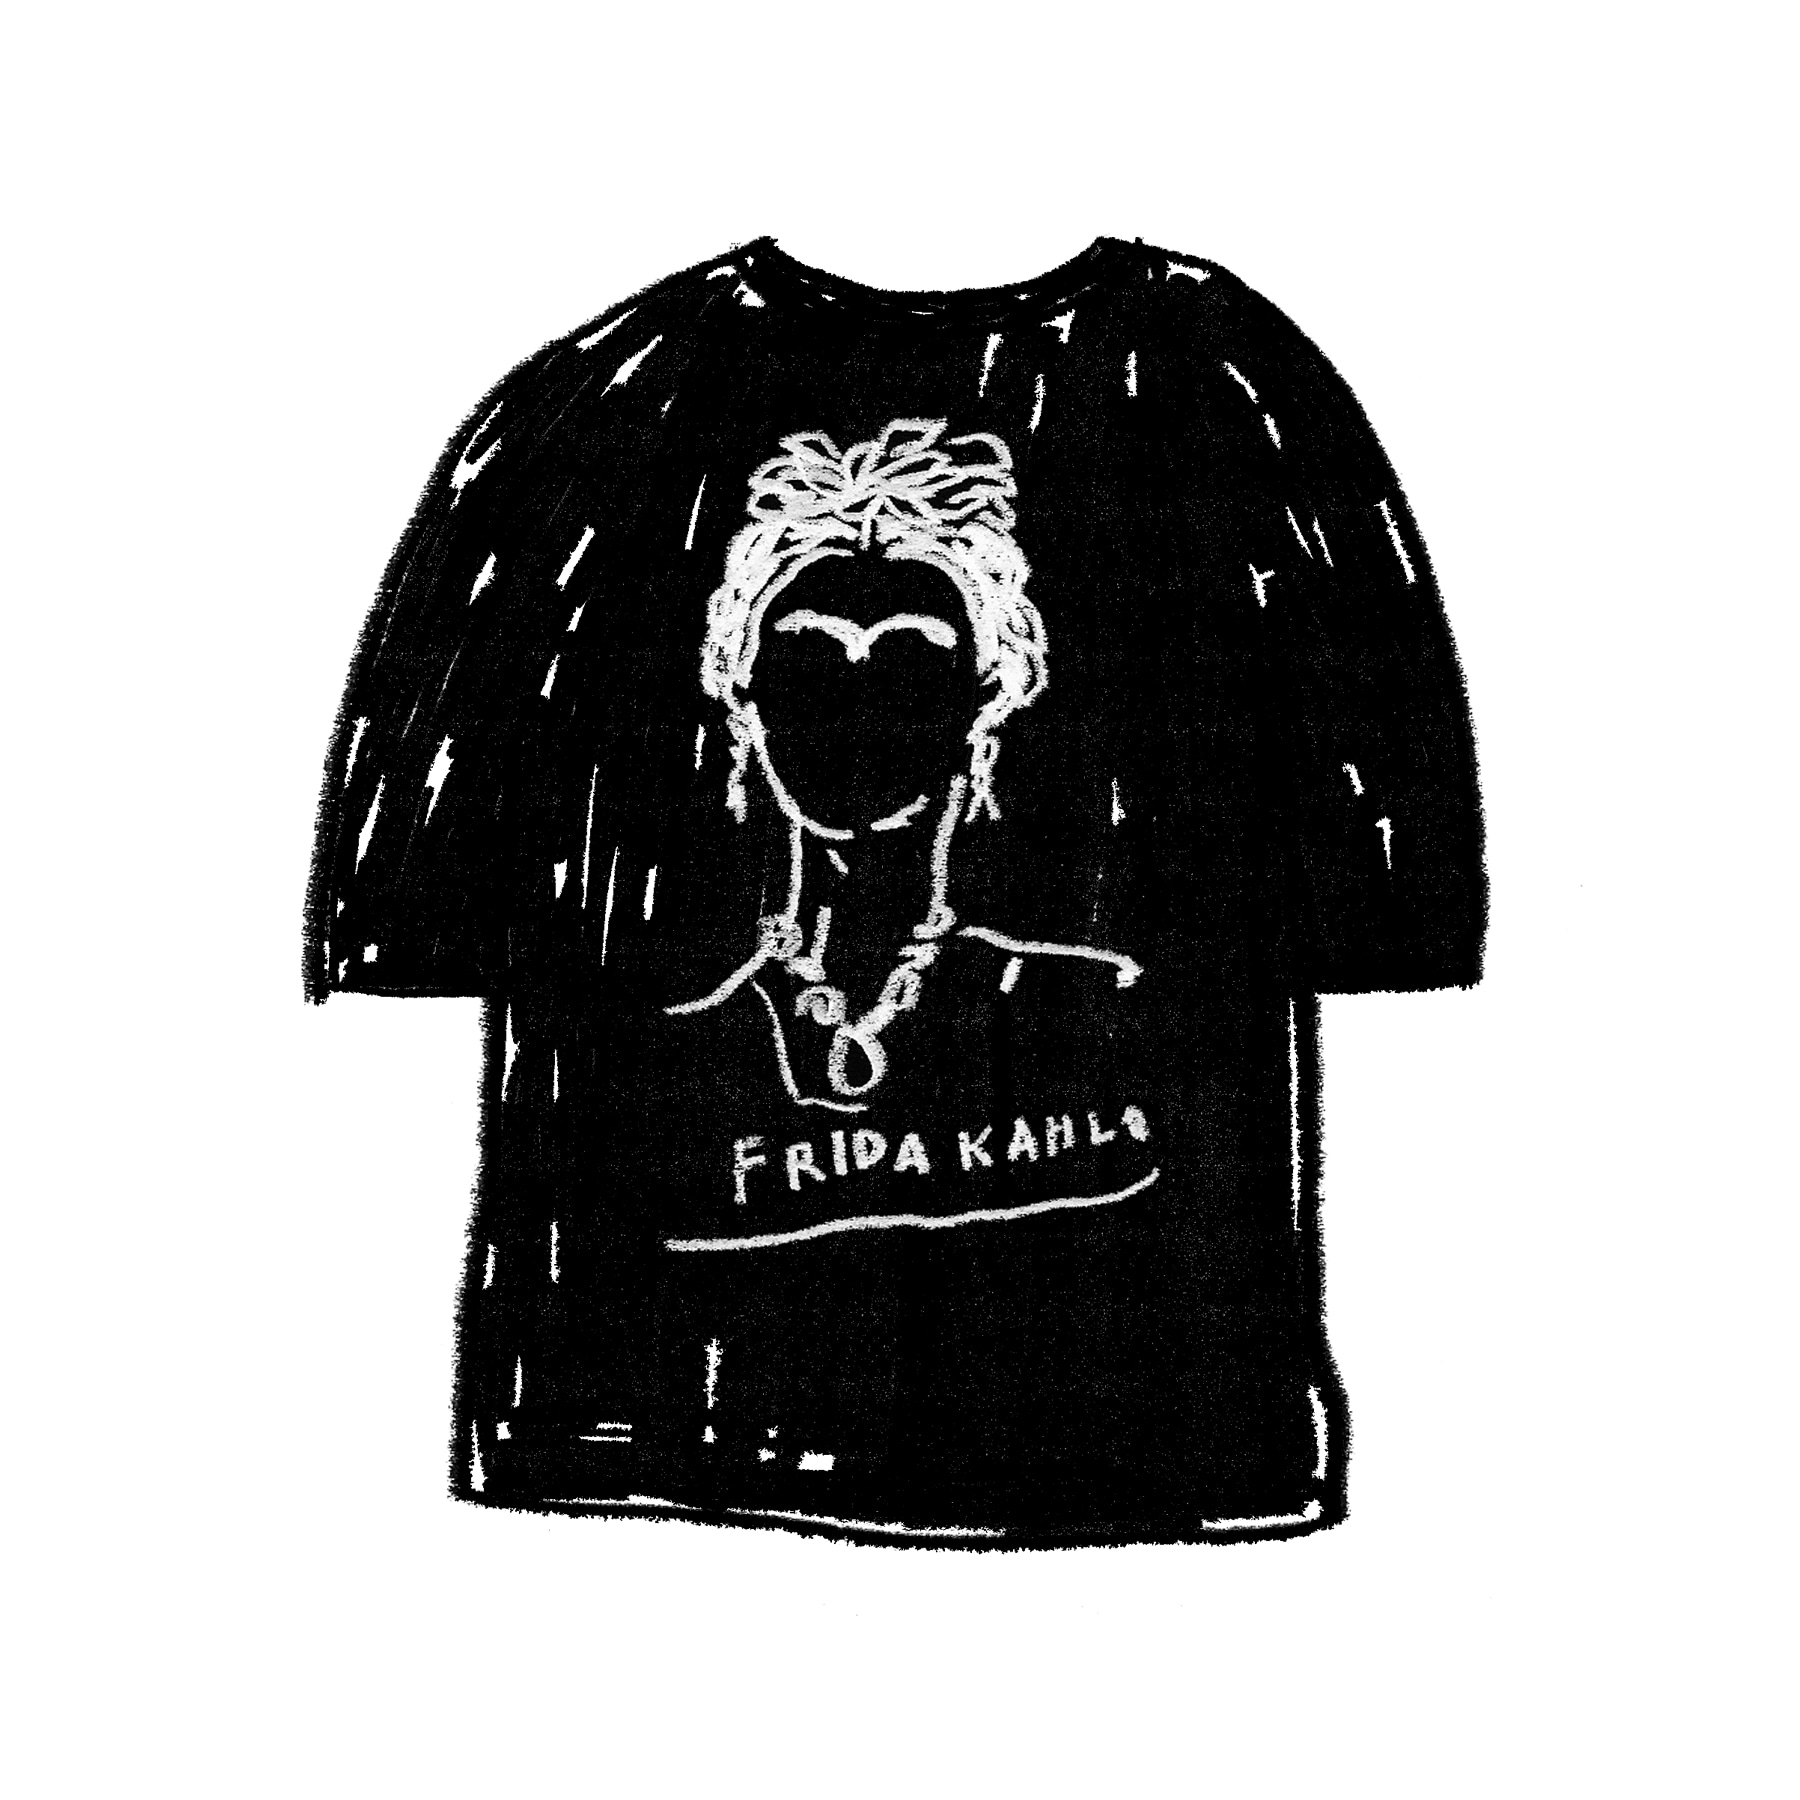 FRIDA KAHLO 1/2 T-SHIRT